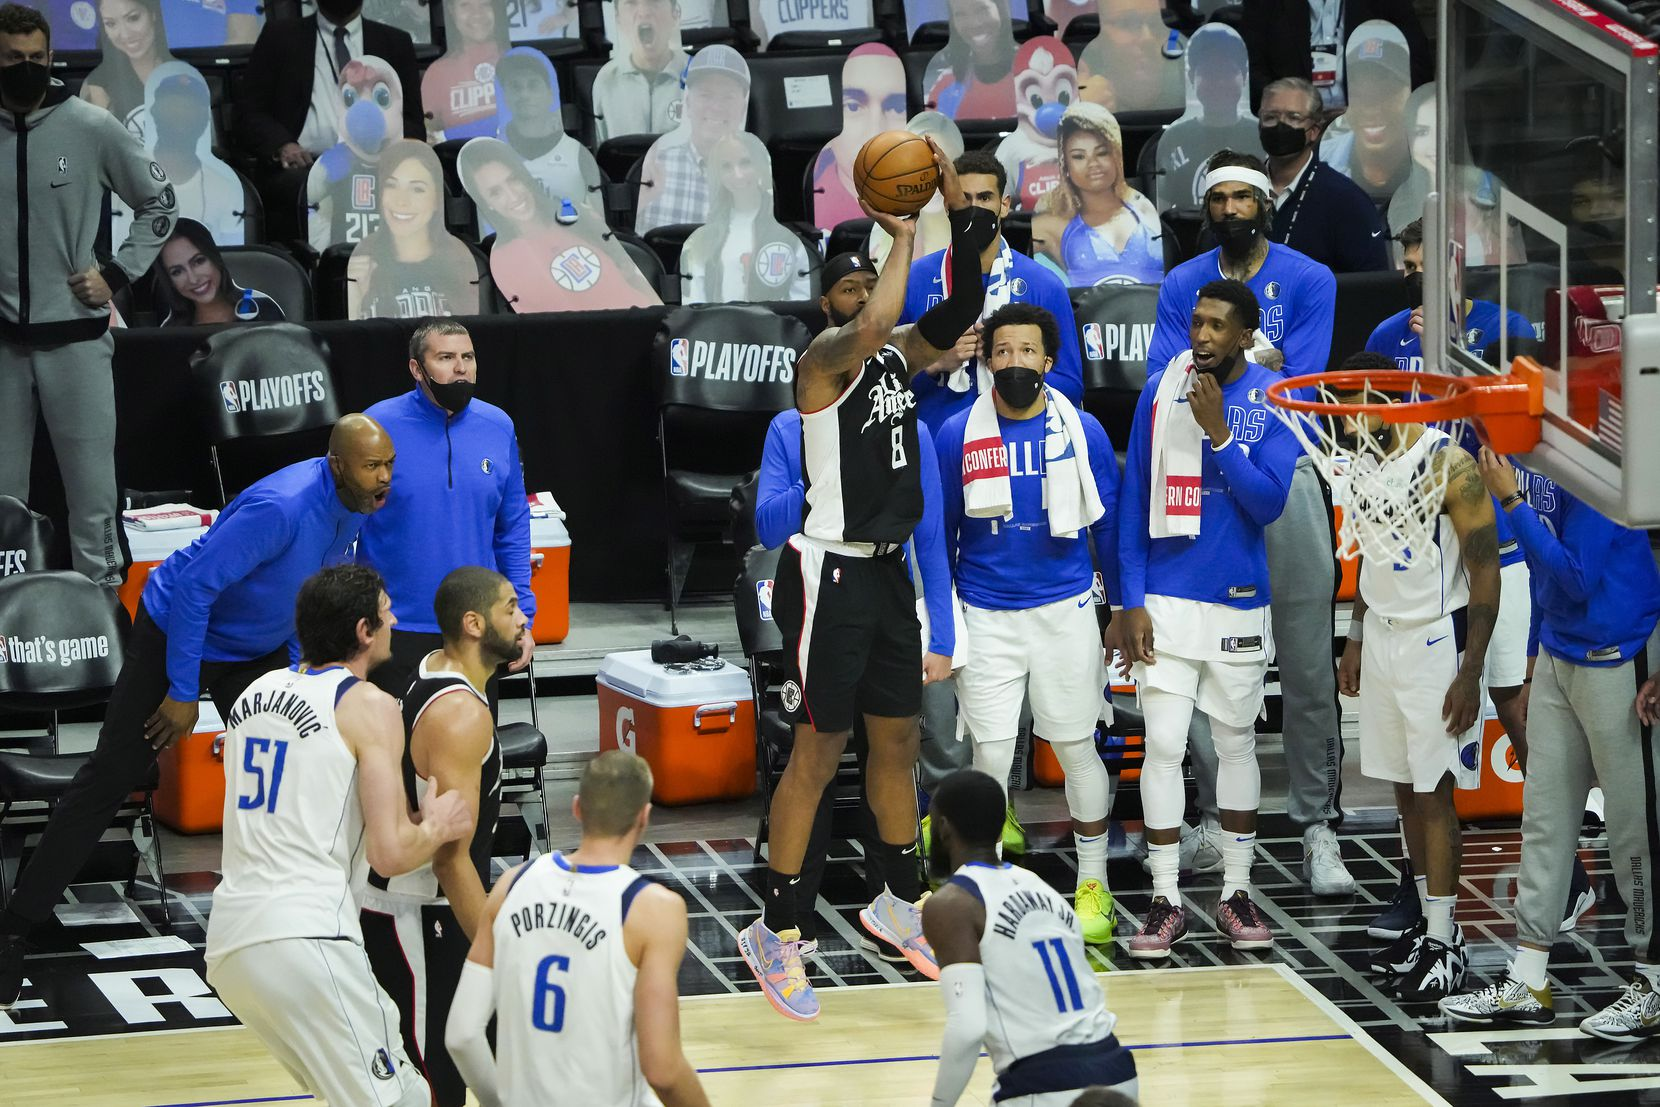 LA Clippers forward Marcus Morris Sr. (8) hits a 3-pointer from the corner in front of the Dallas Mavericks bench during the fourth quarter of Game 7 of an NBA playoff series at the Staples Center on Sunday, June 6, 2021, in Los Angeles.